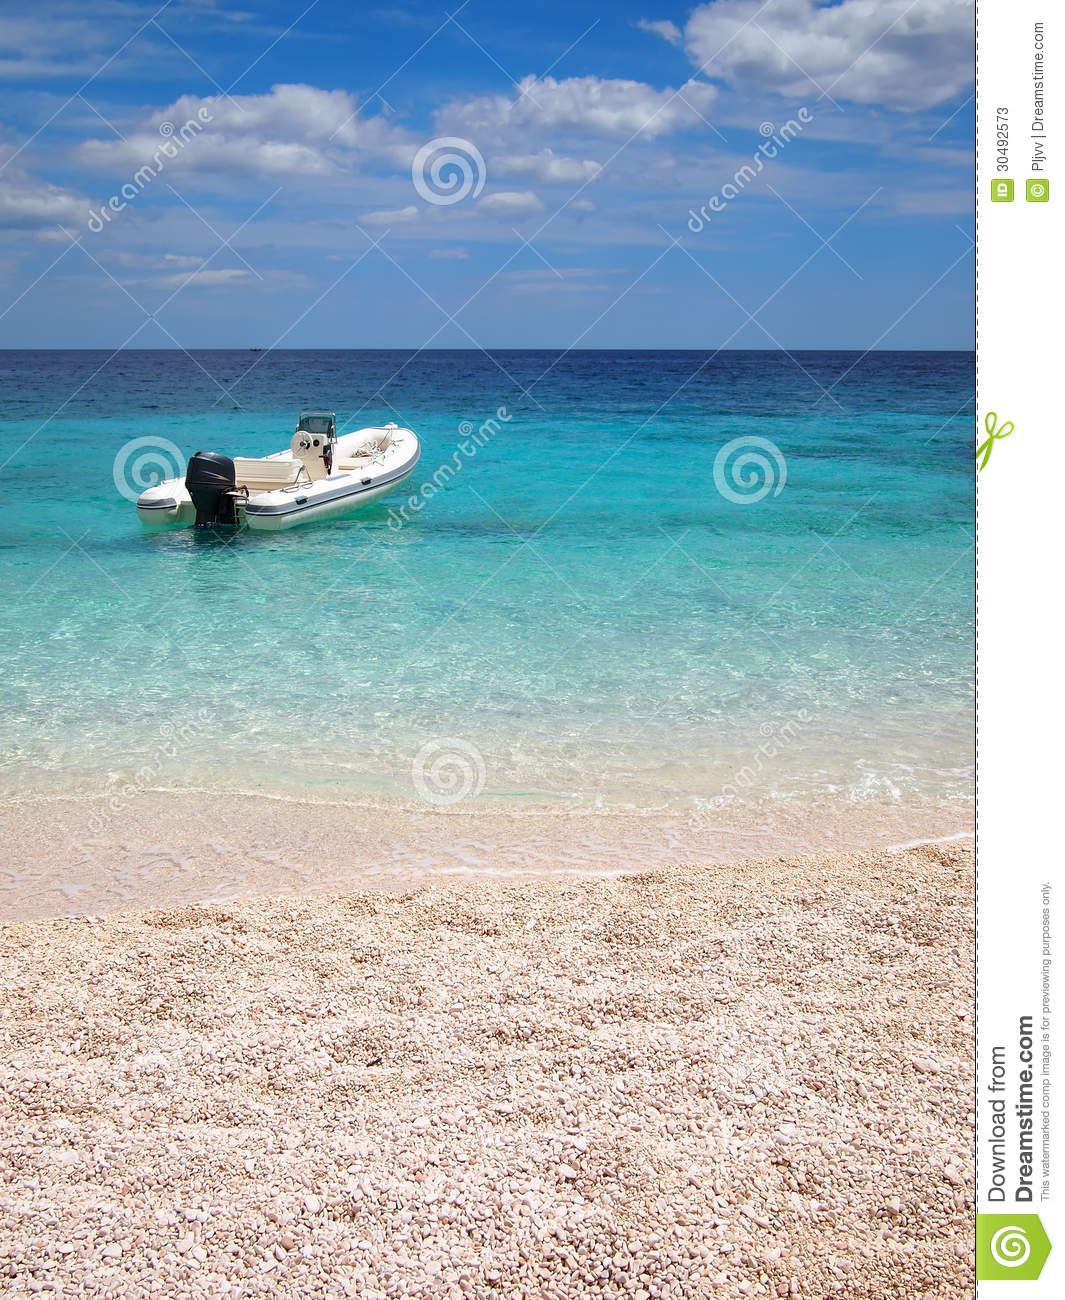 Private Beaches: Private Beach With Speedboat Stock Photos